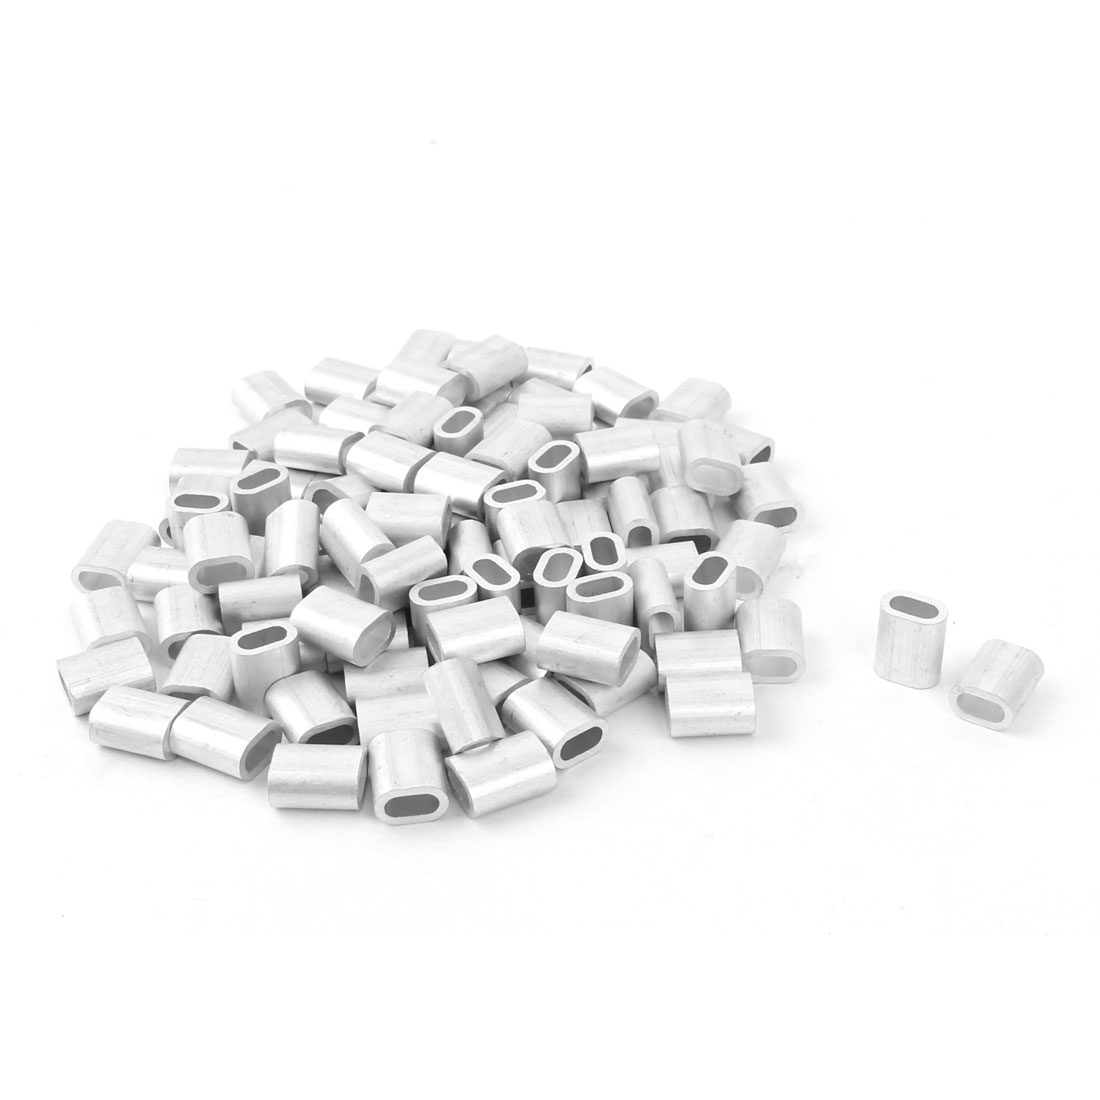 UXCELL 100Pcs 3mm Diameter Steel Wire Rope Aluminum Ferrules Sleeves Clip Fittings Cable Crimps